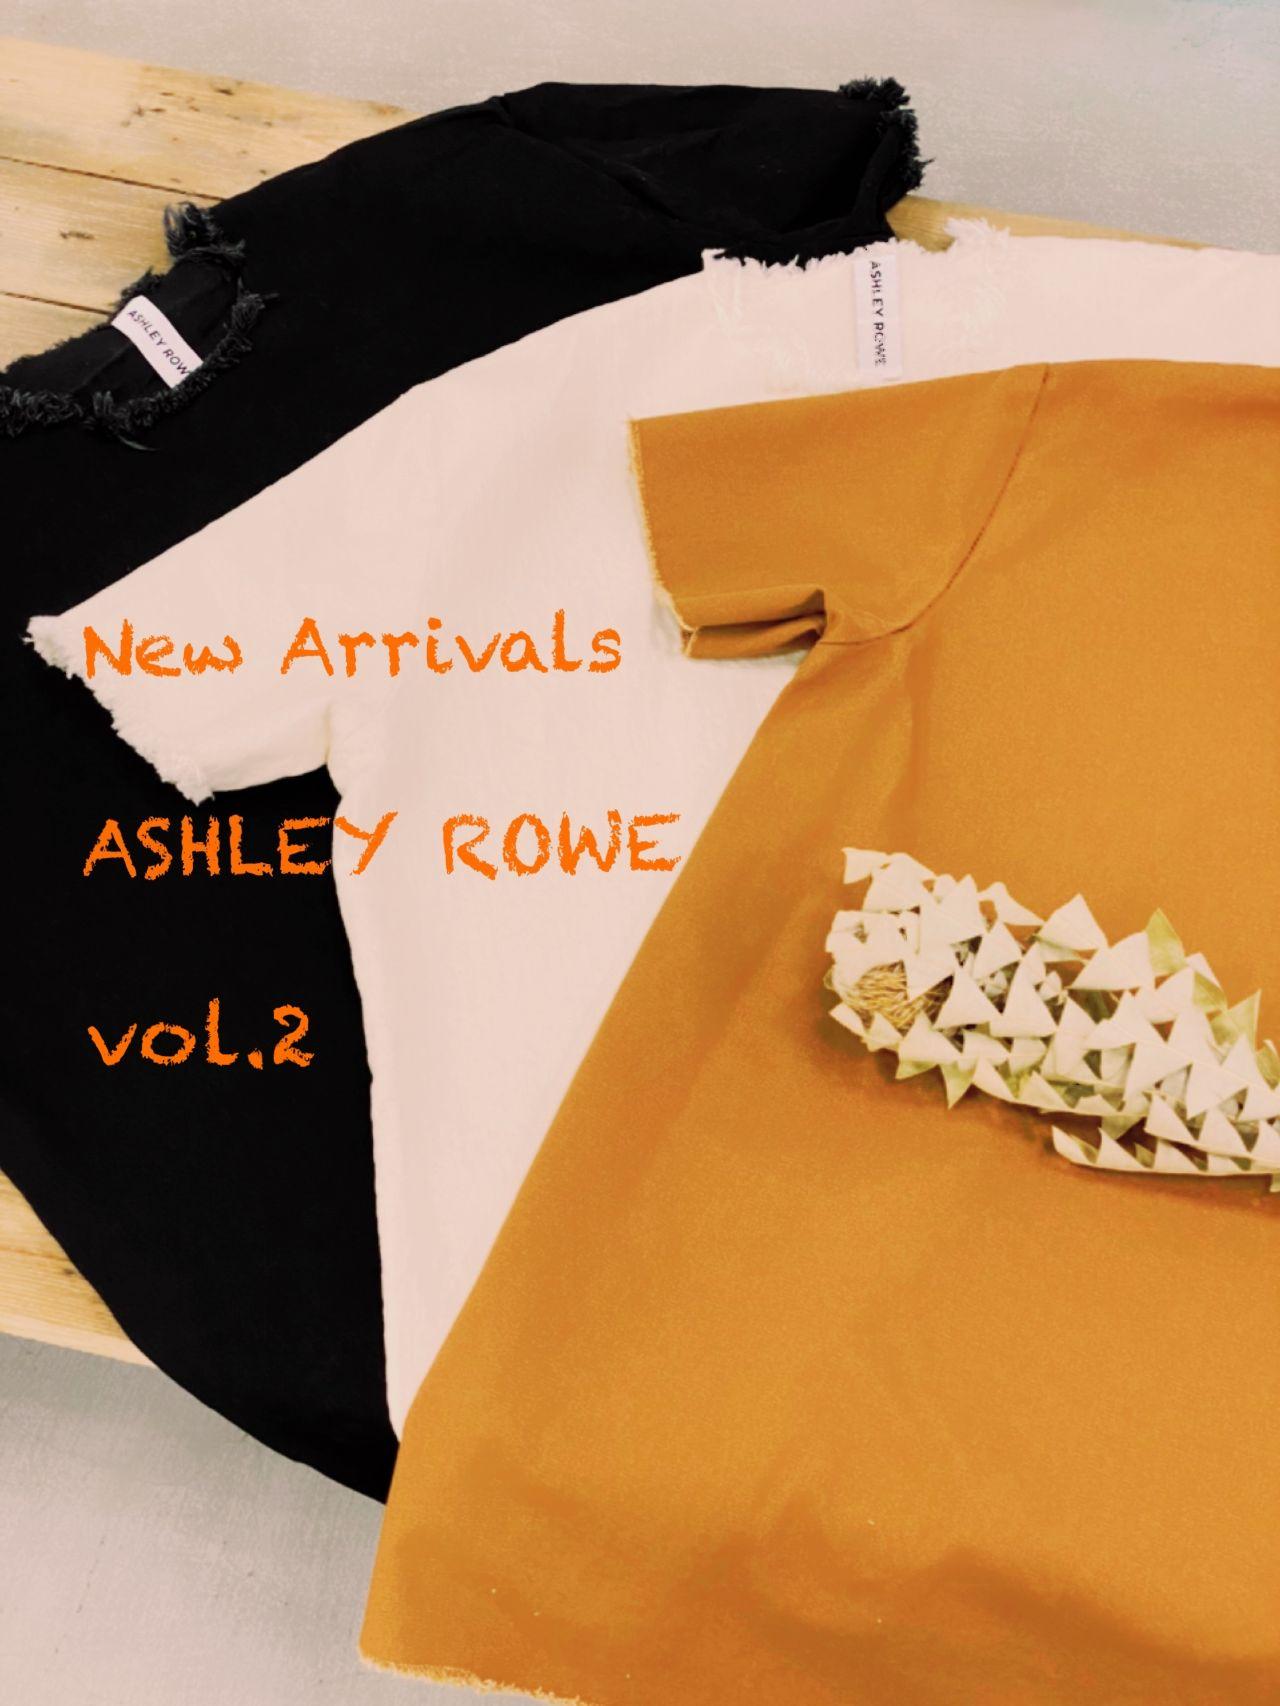 ASHLEY ROWE New Arrivals vol.2 !!!の写真